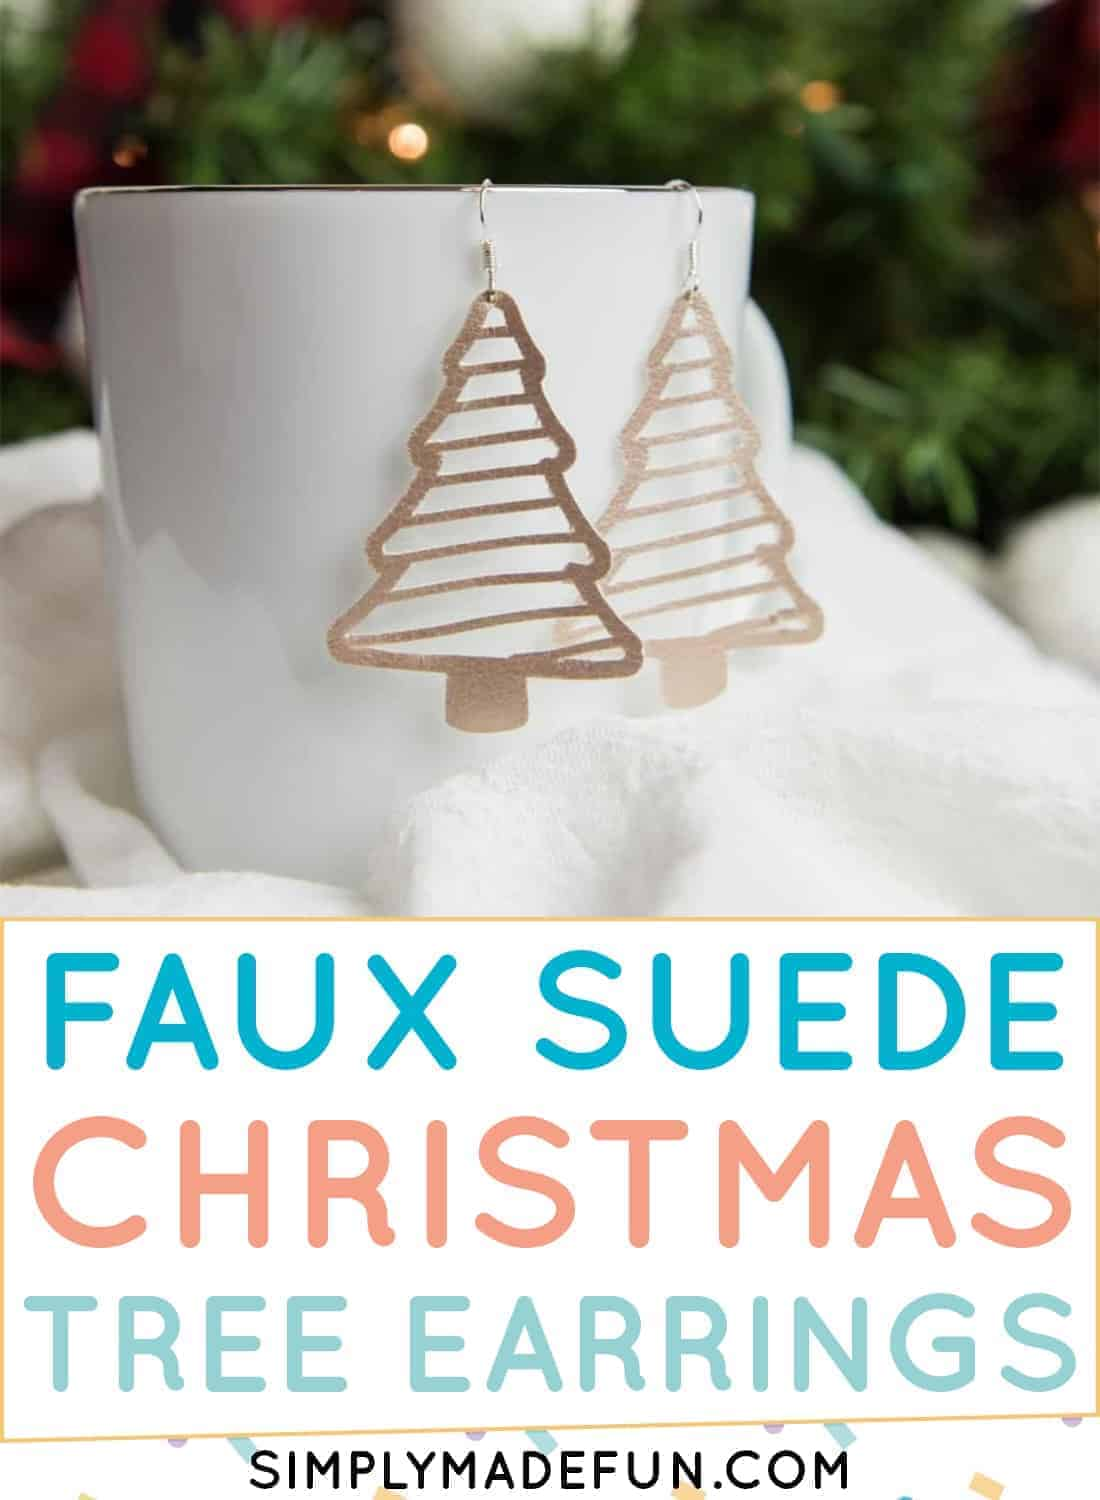 Faux suede Christmas Tree Earrings